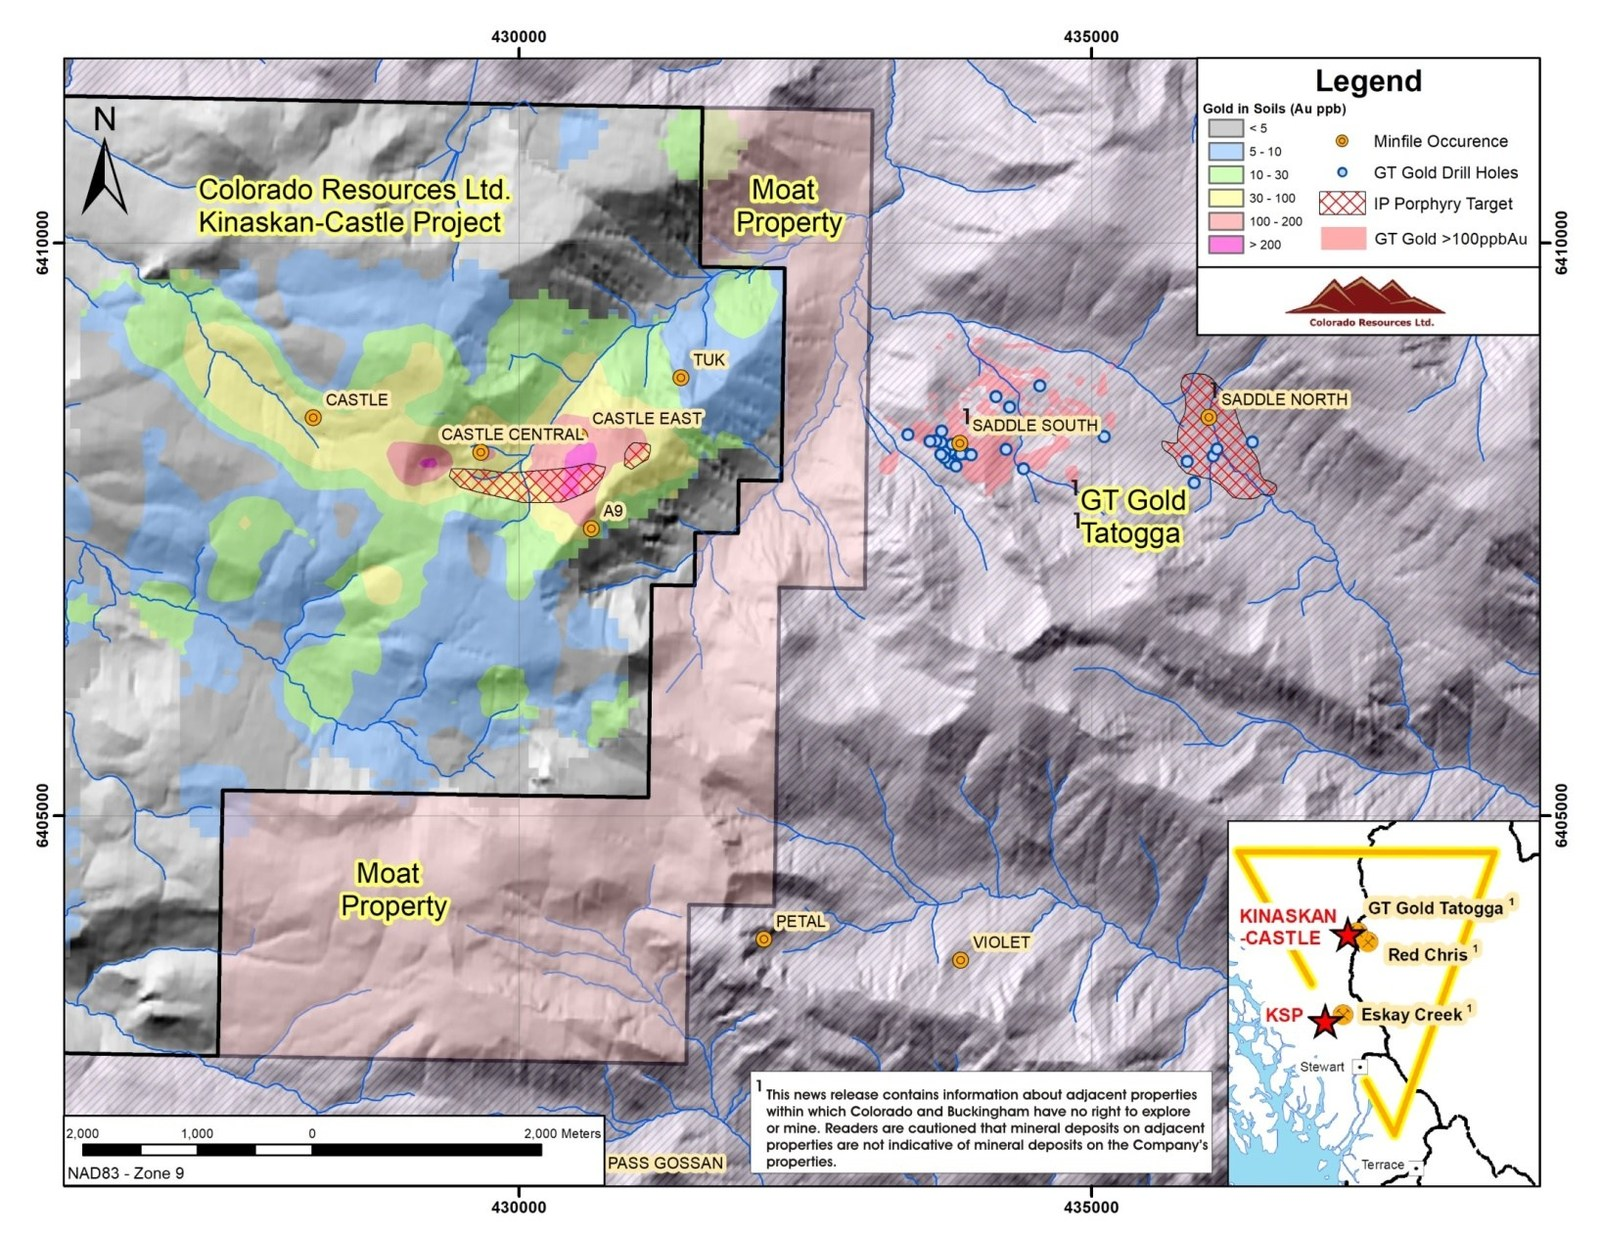 Figure 1: Location of Buckingham's Moat Property relative to Colorado's Kinaskan-Castle Property andGT Gold'sSaddle South andSaddle North mineral discoveries at Tatogga. Note east-west alignment of gold and copper anomalies and mineral occurrences from Saddle North and South through to the Castle area. Note that the Castle Central and Castle East targets have yet to be drill tested